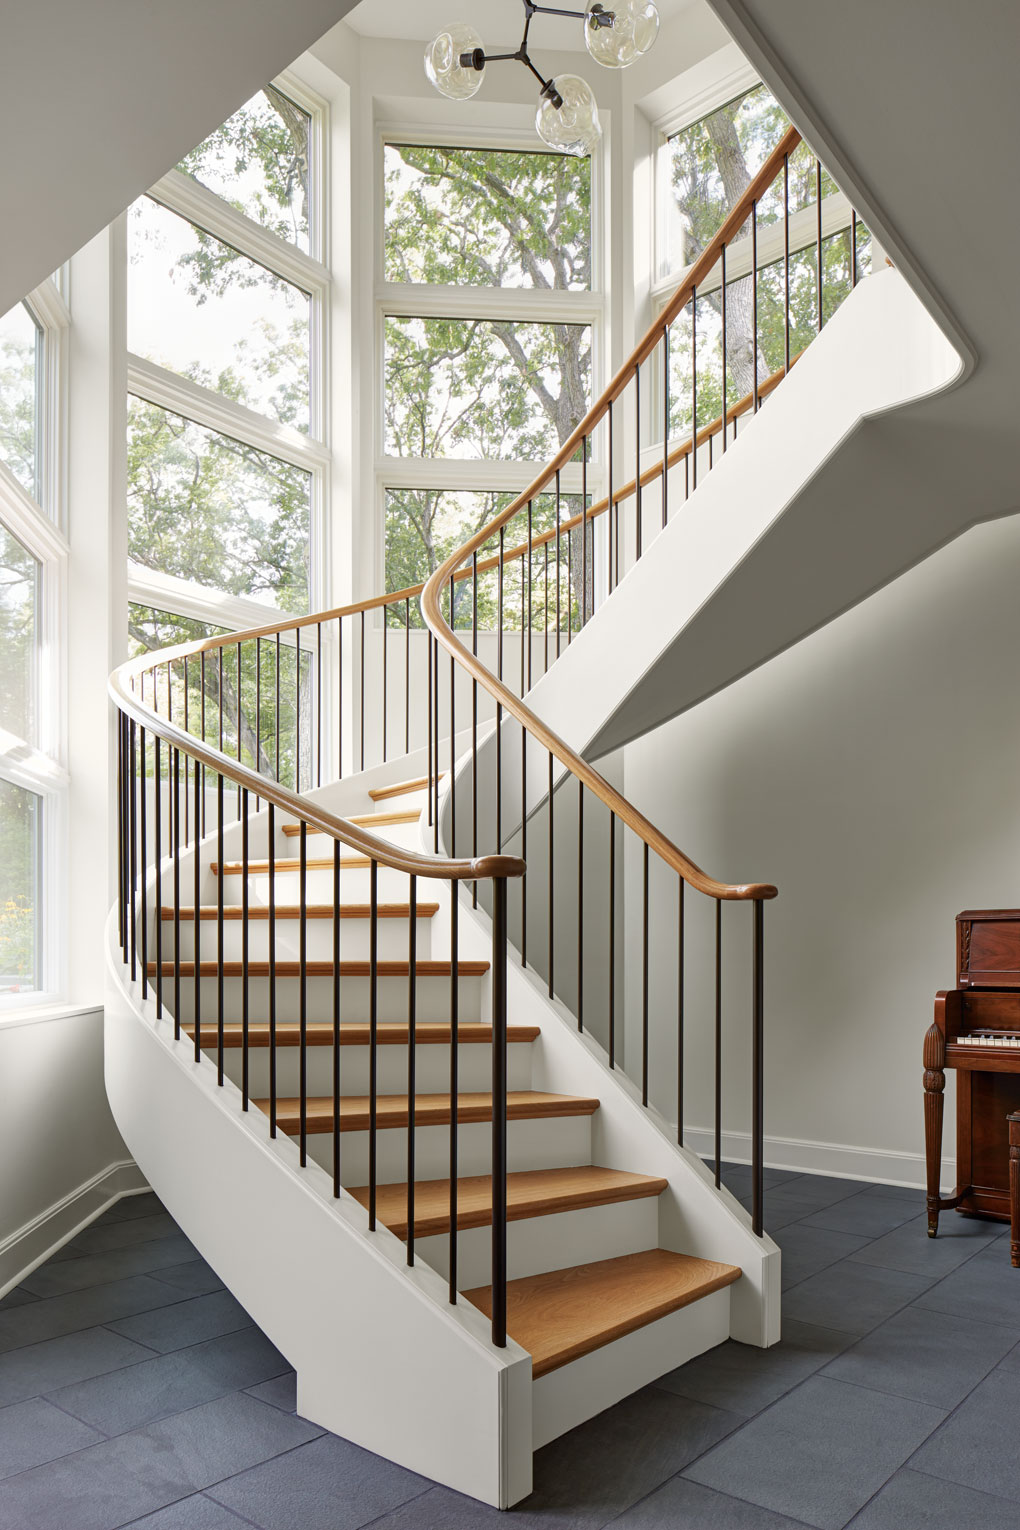 A sculptural staircase attached only at the top and bottom is surrounded by windows.